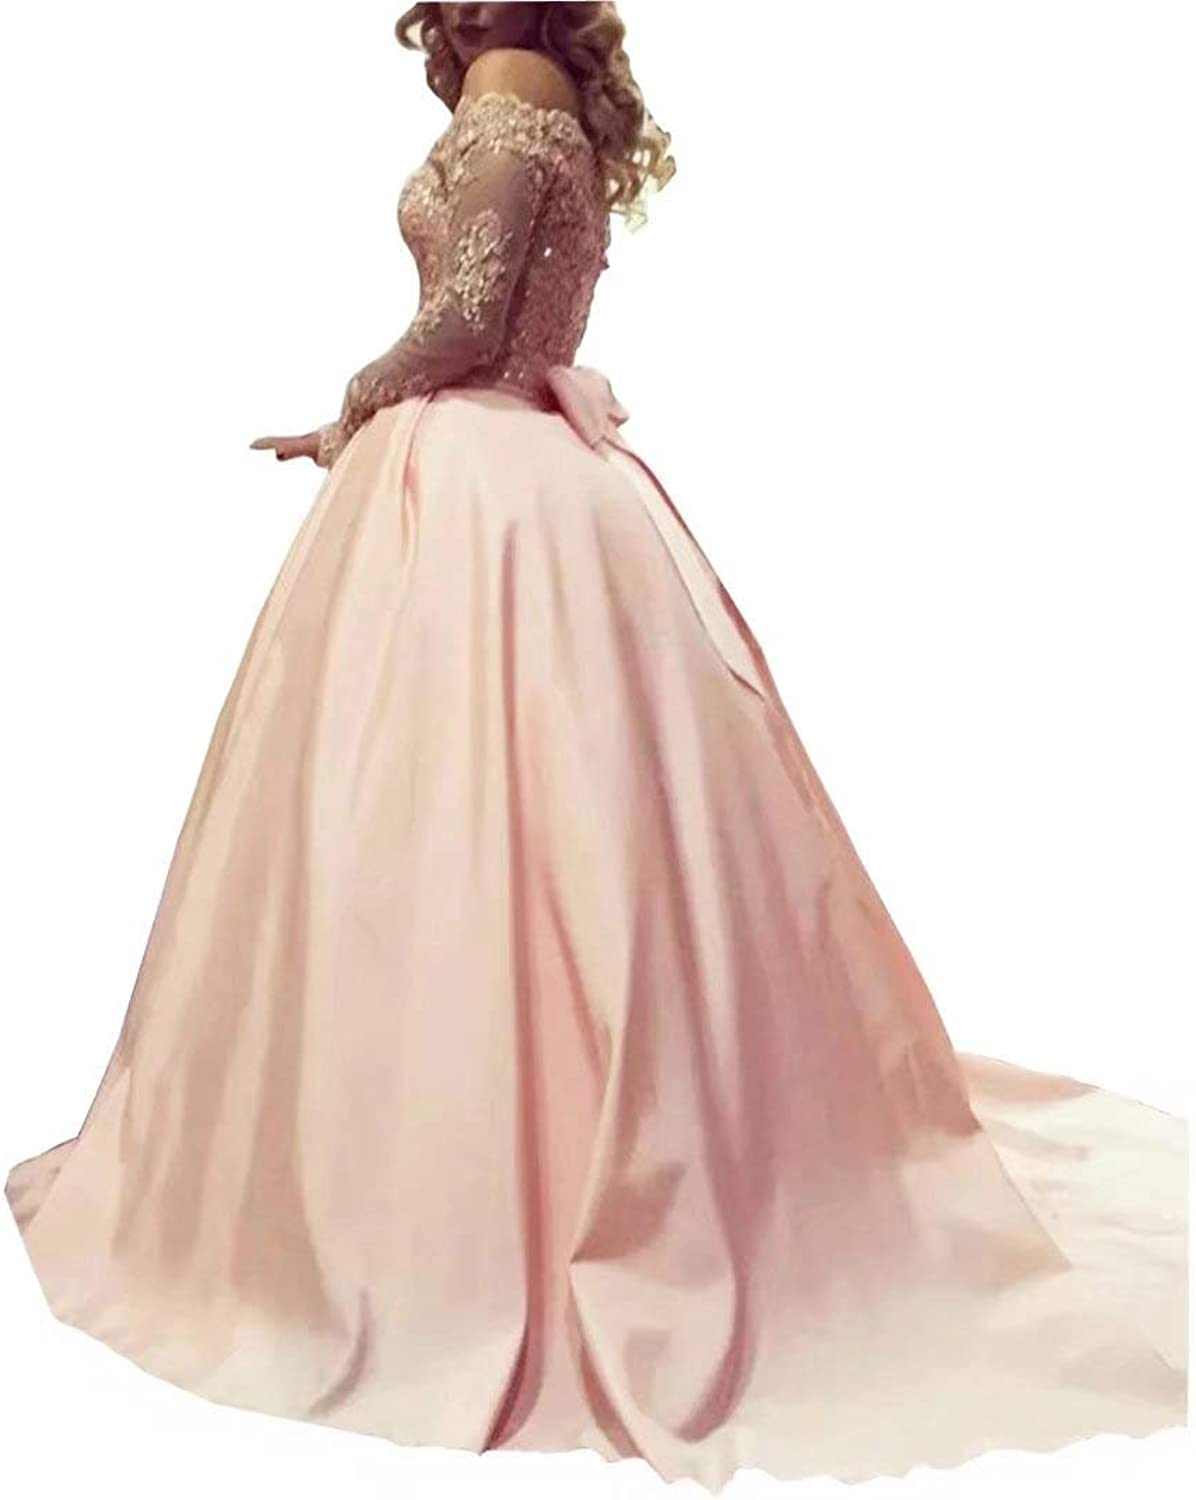 YOUTODRESS Plus Size Prom Dresses with Sleeves bluesh Pink Off The Shoulder Lace Ball Gowns